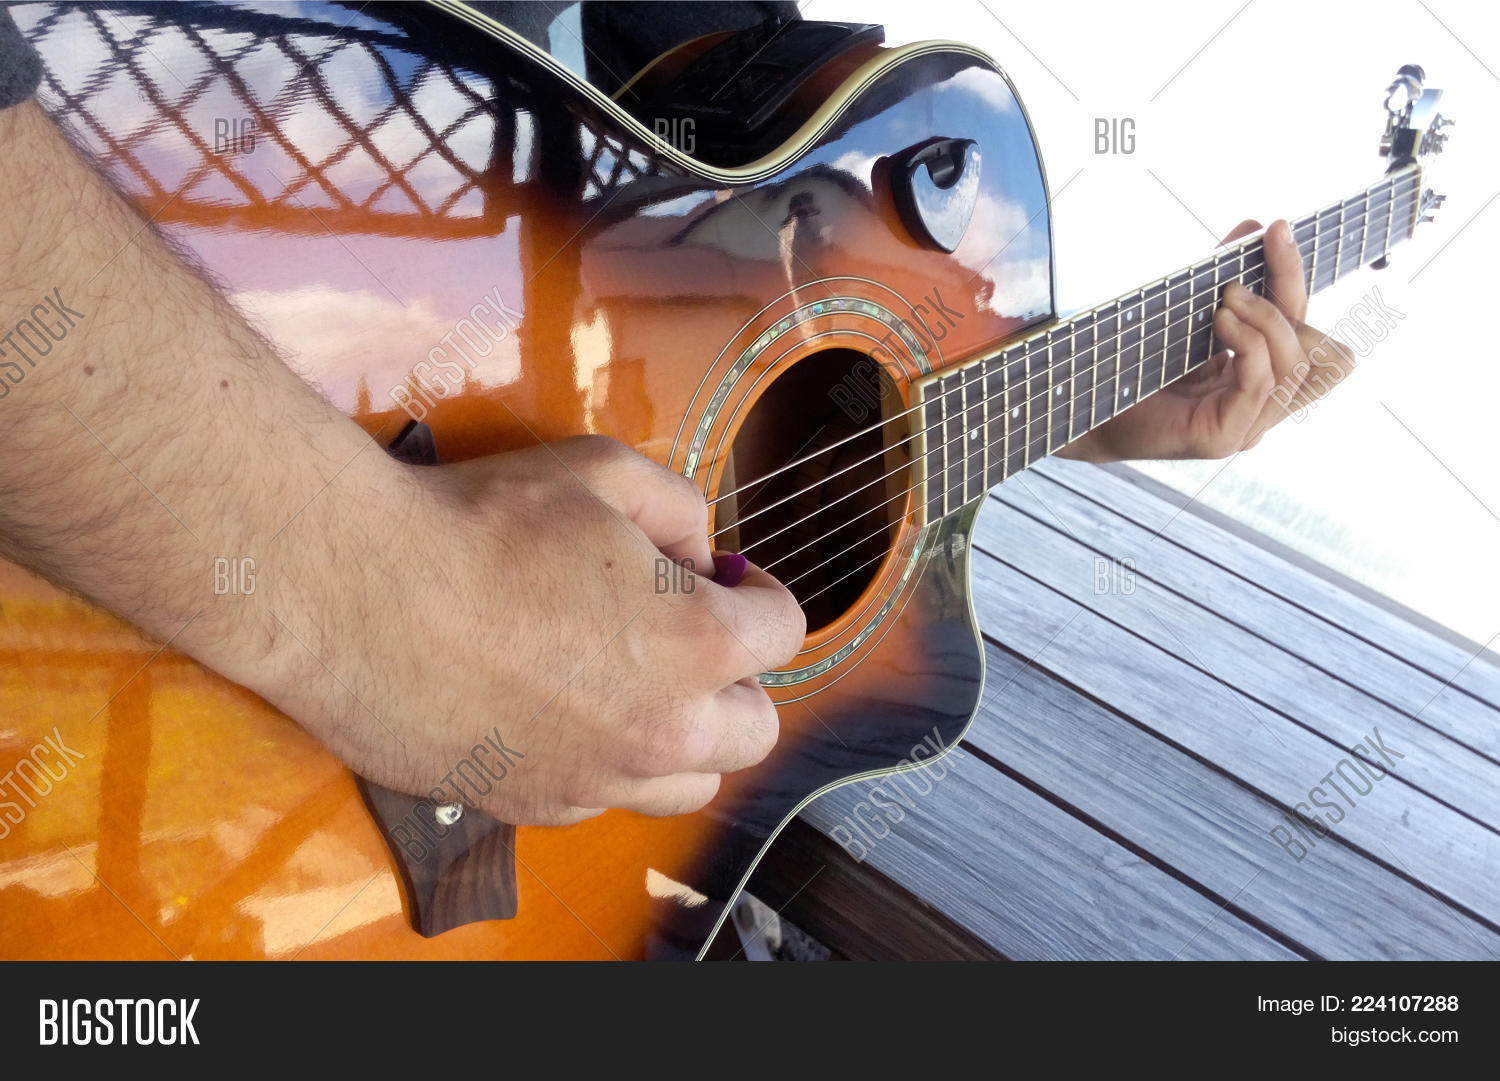 Guitar Hands Guitarist Image Photo Free Trial Bigstock